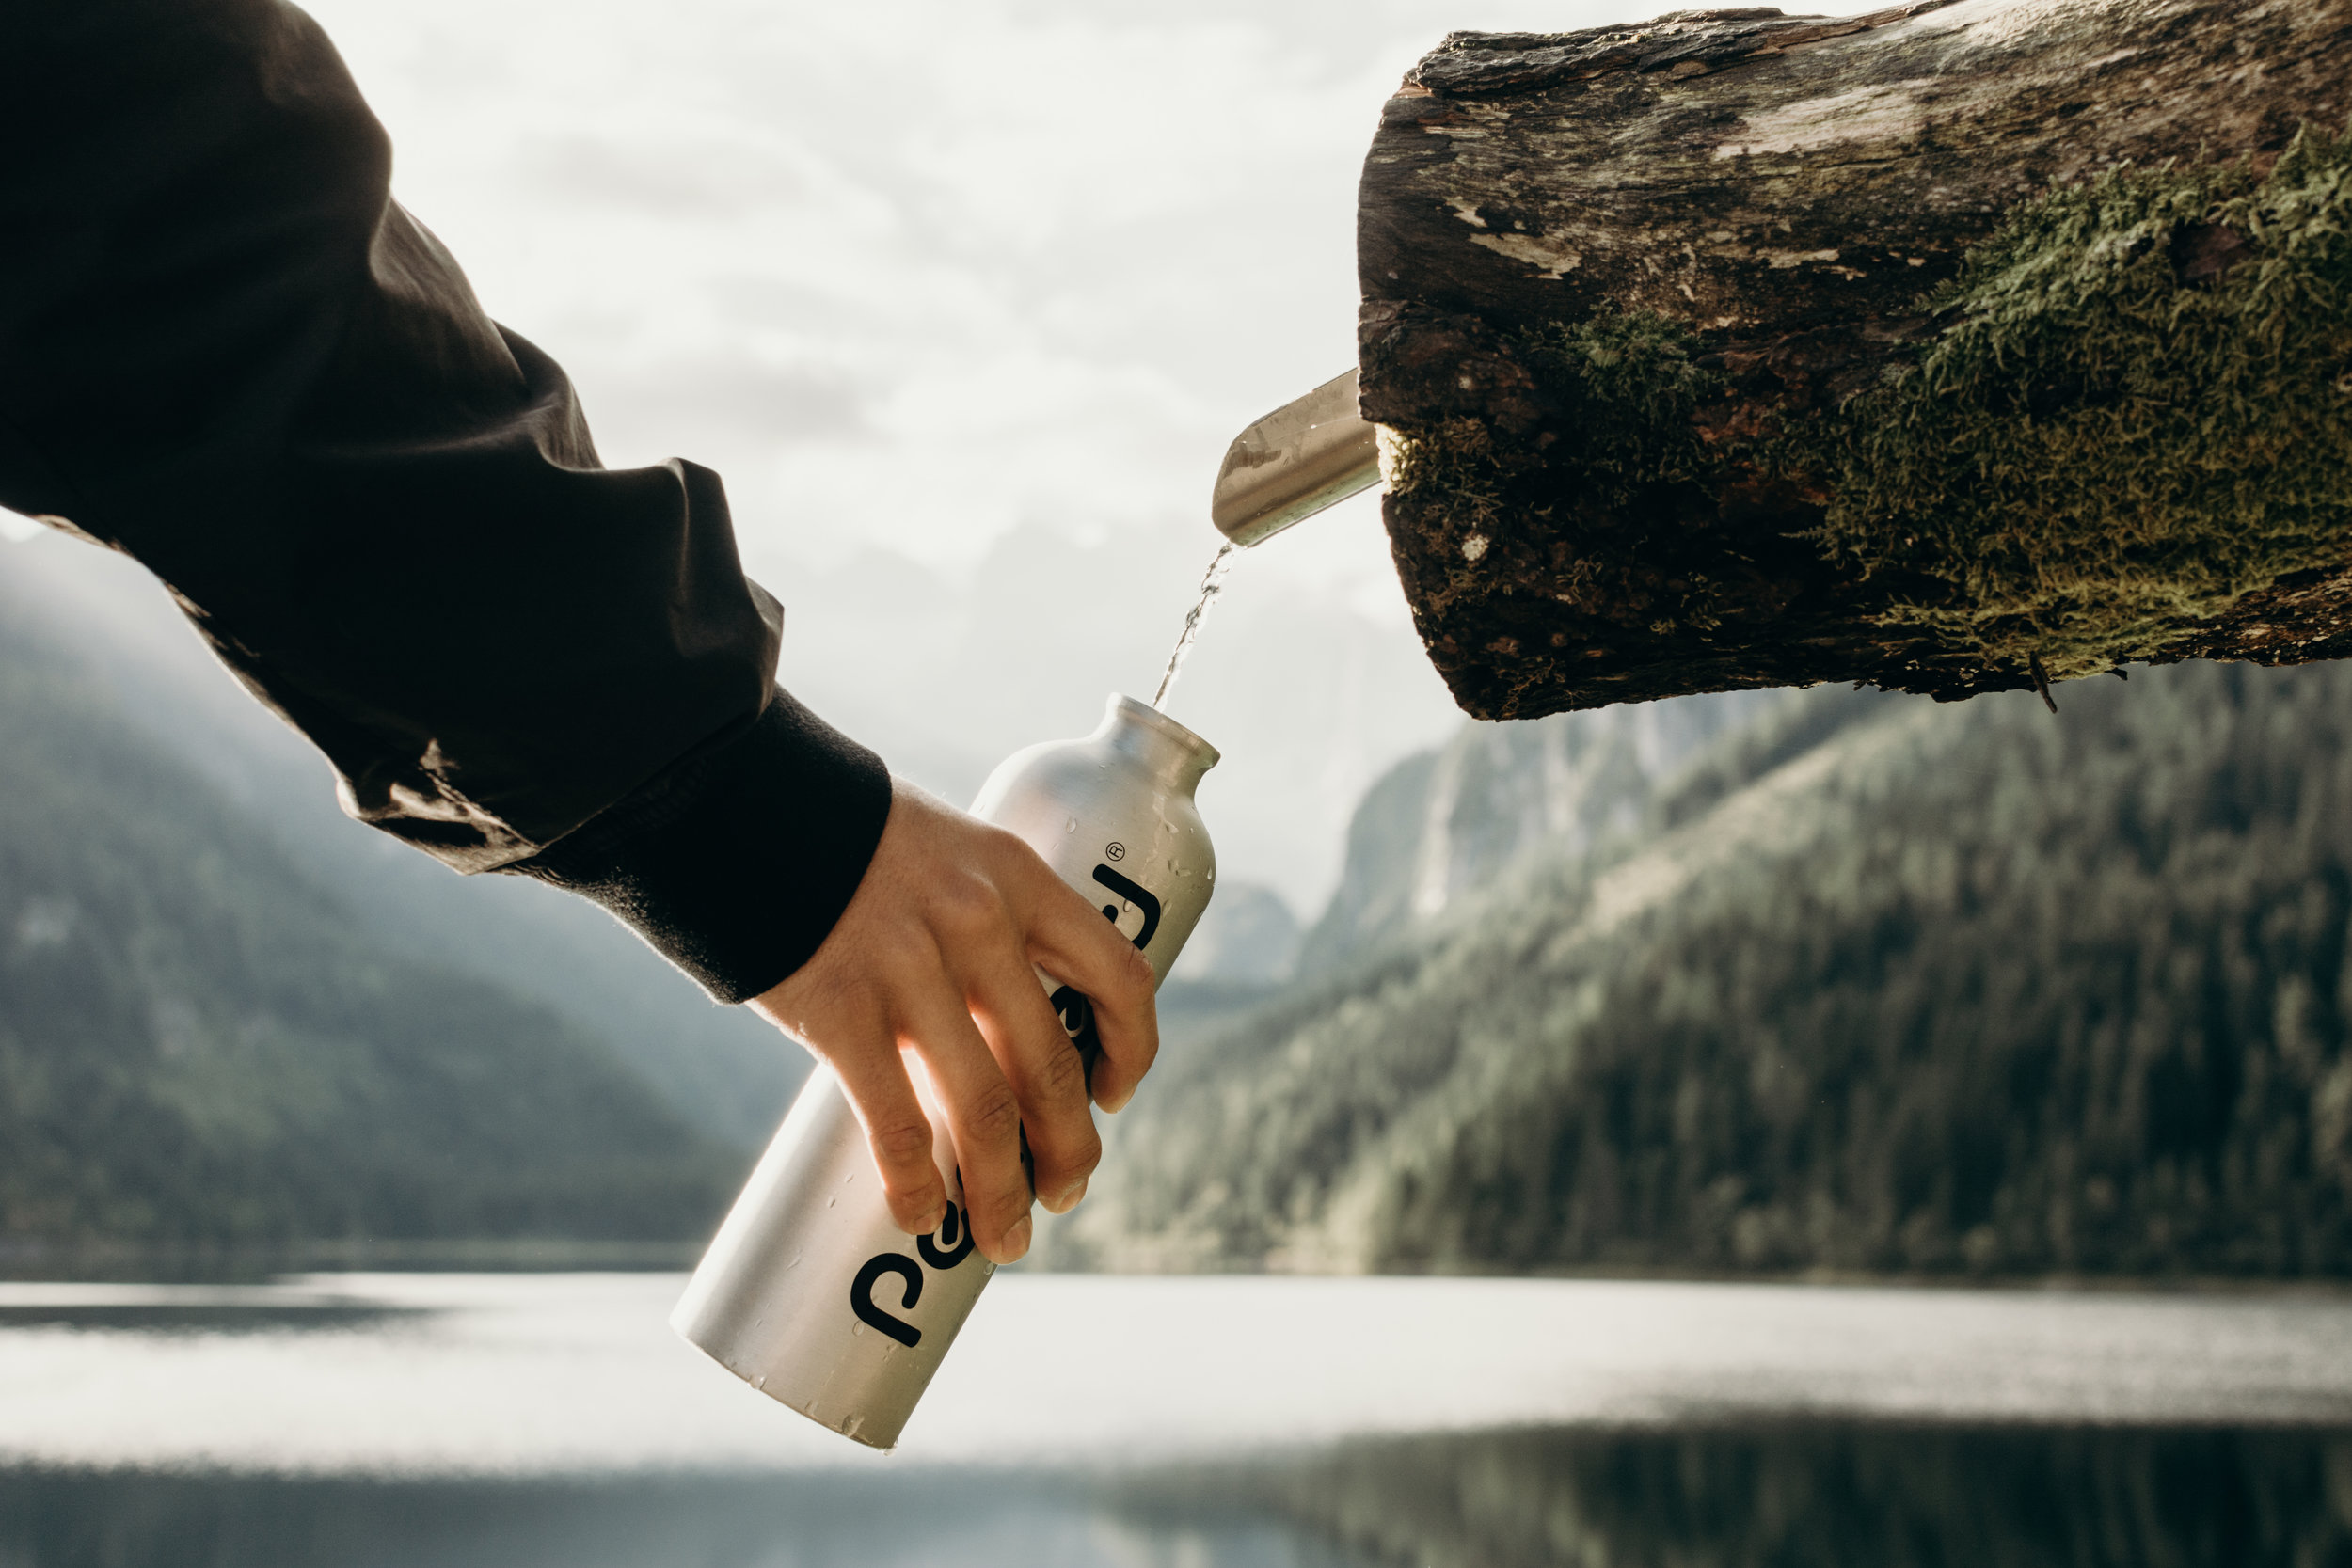 Making a difference doesn't have to be scheduling a huge clean up, it can be something as simple as bringing your own water bottle instead of a plastic one.